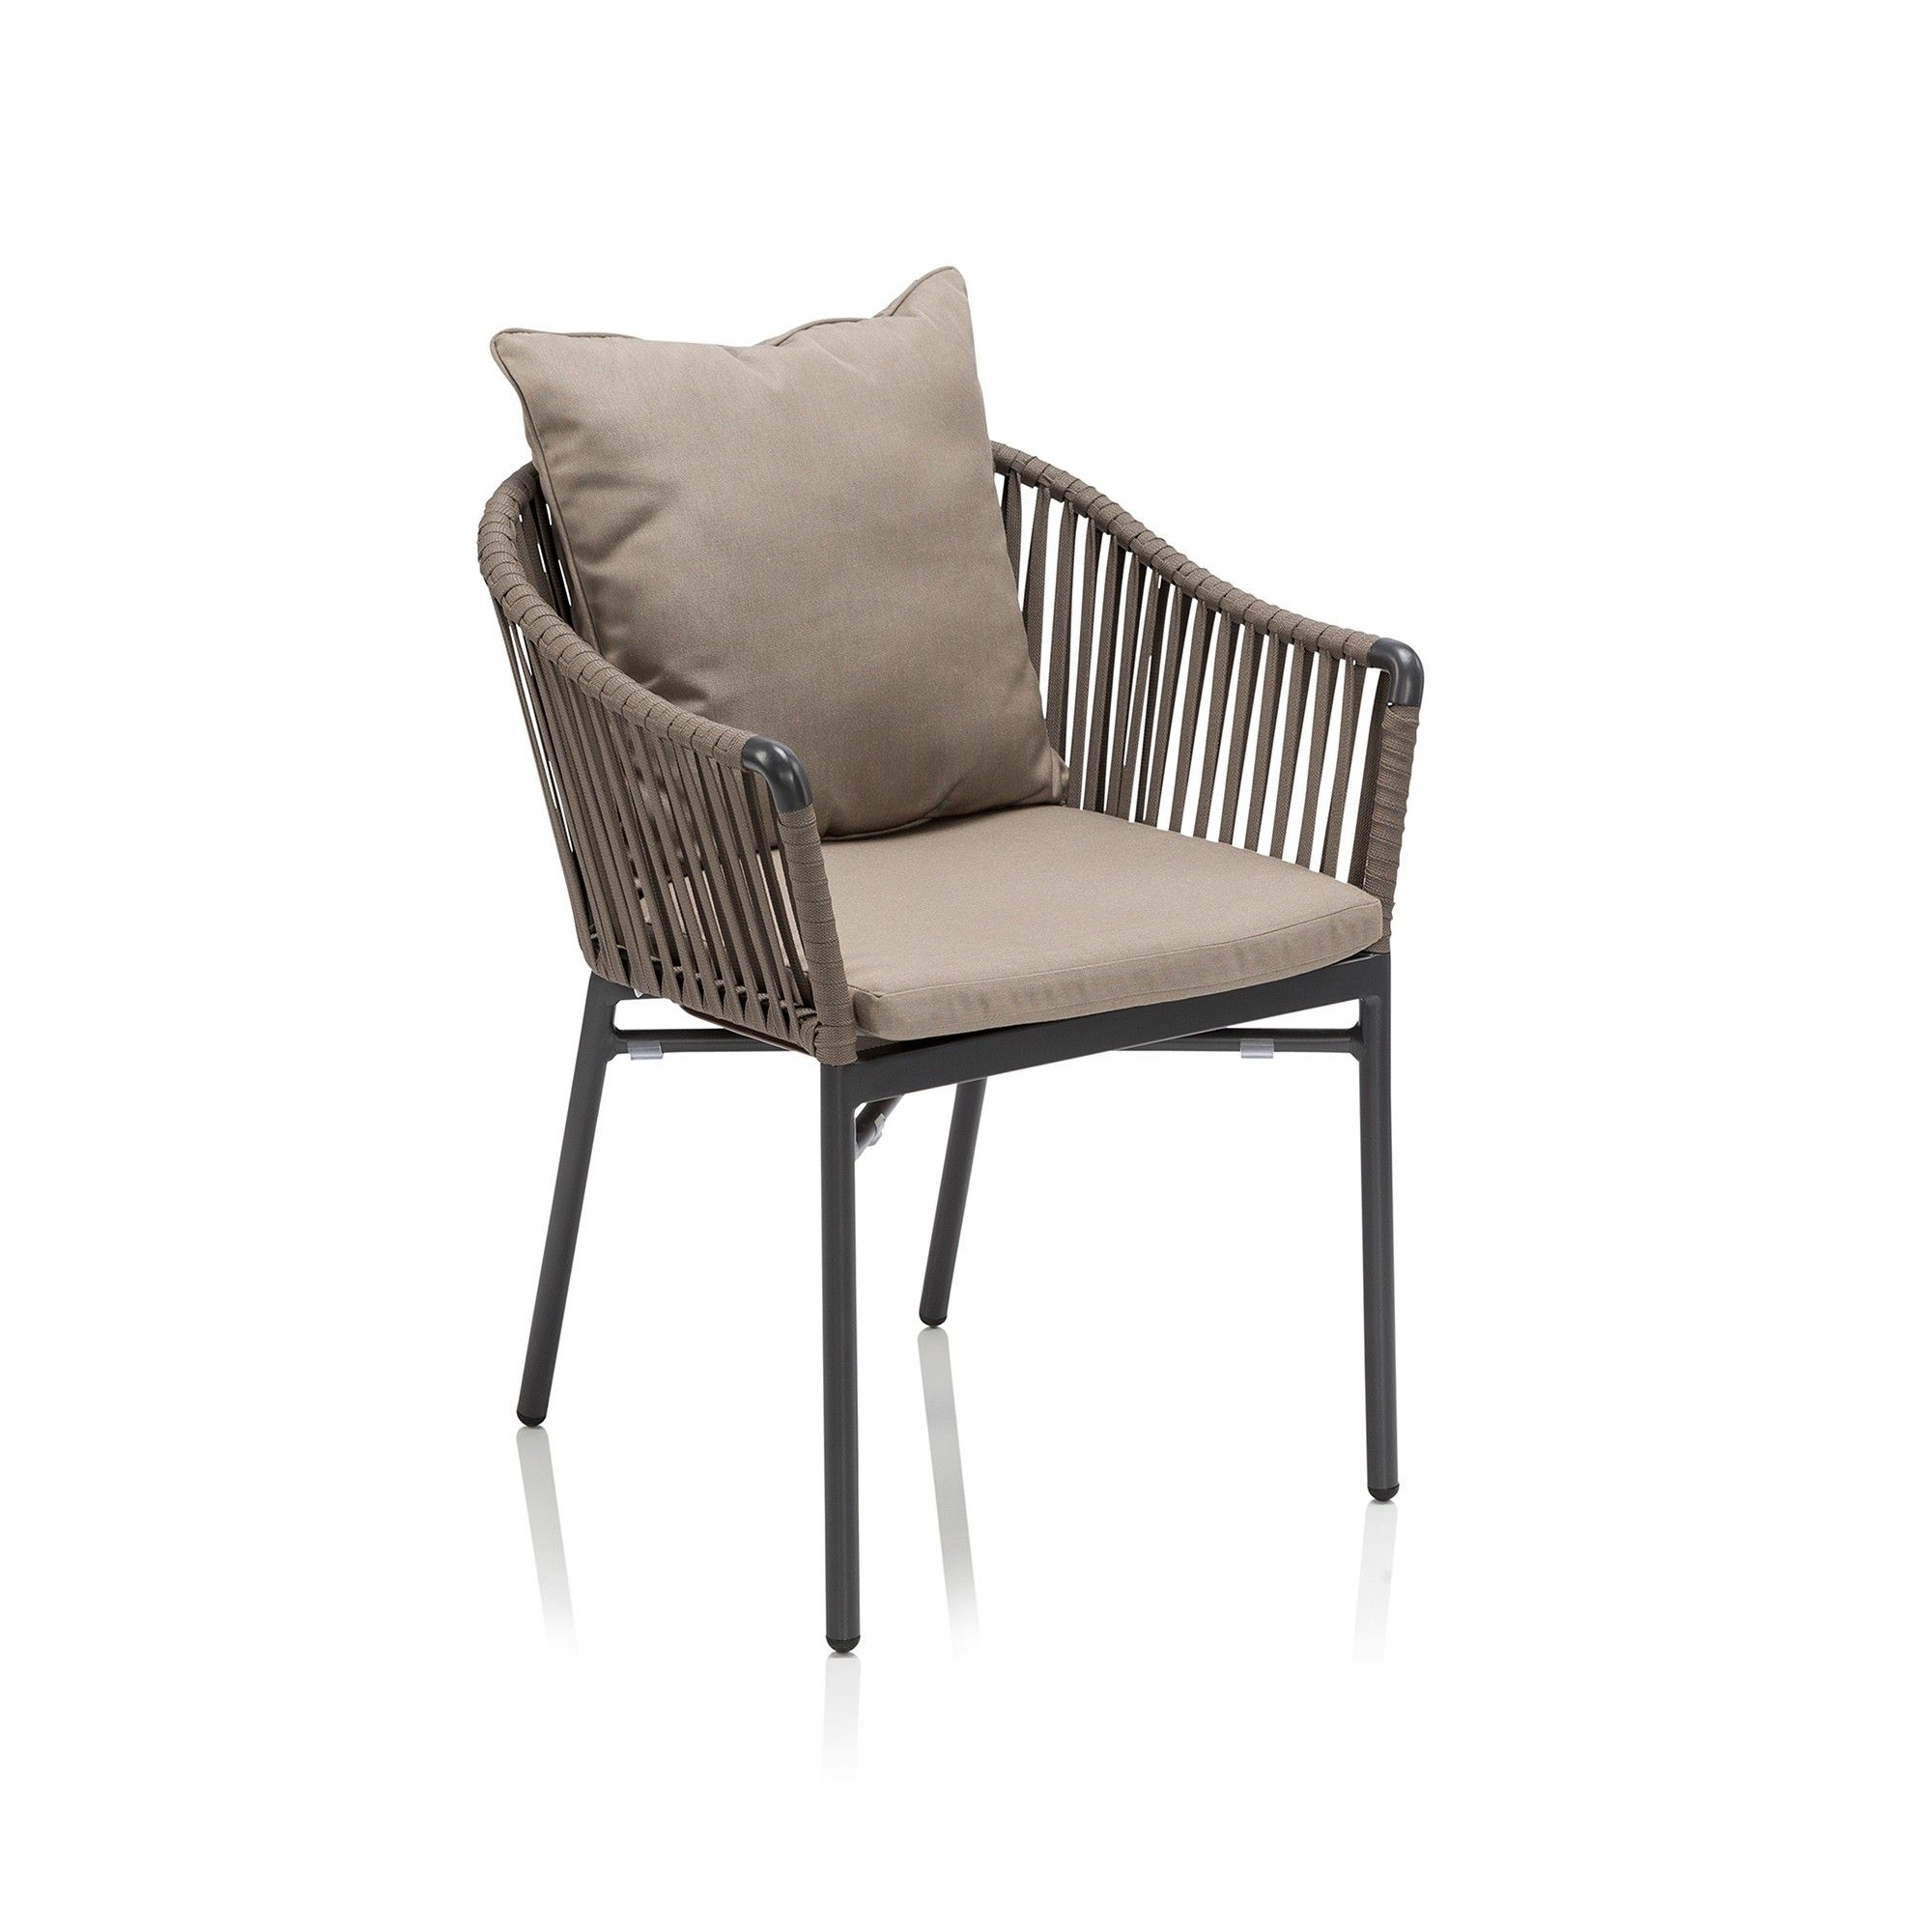 Outside Furniture Chairs Trinidad Outdoor Dining Chair Barbados Hotel Outdoor